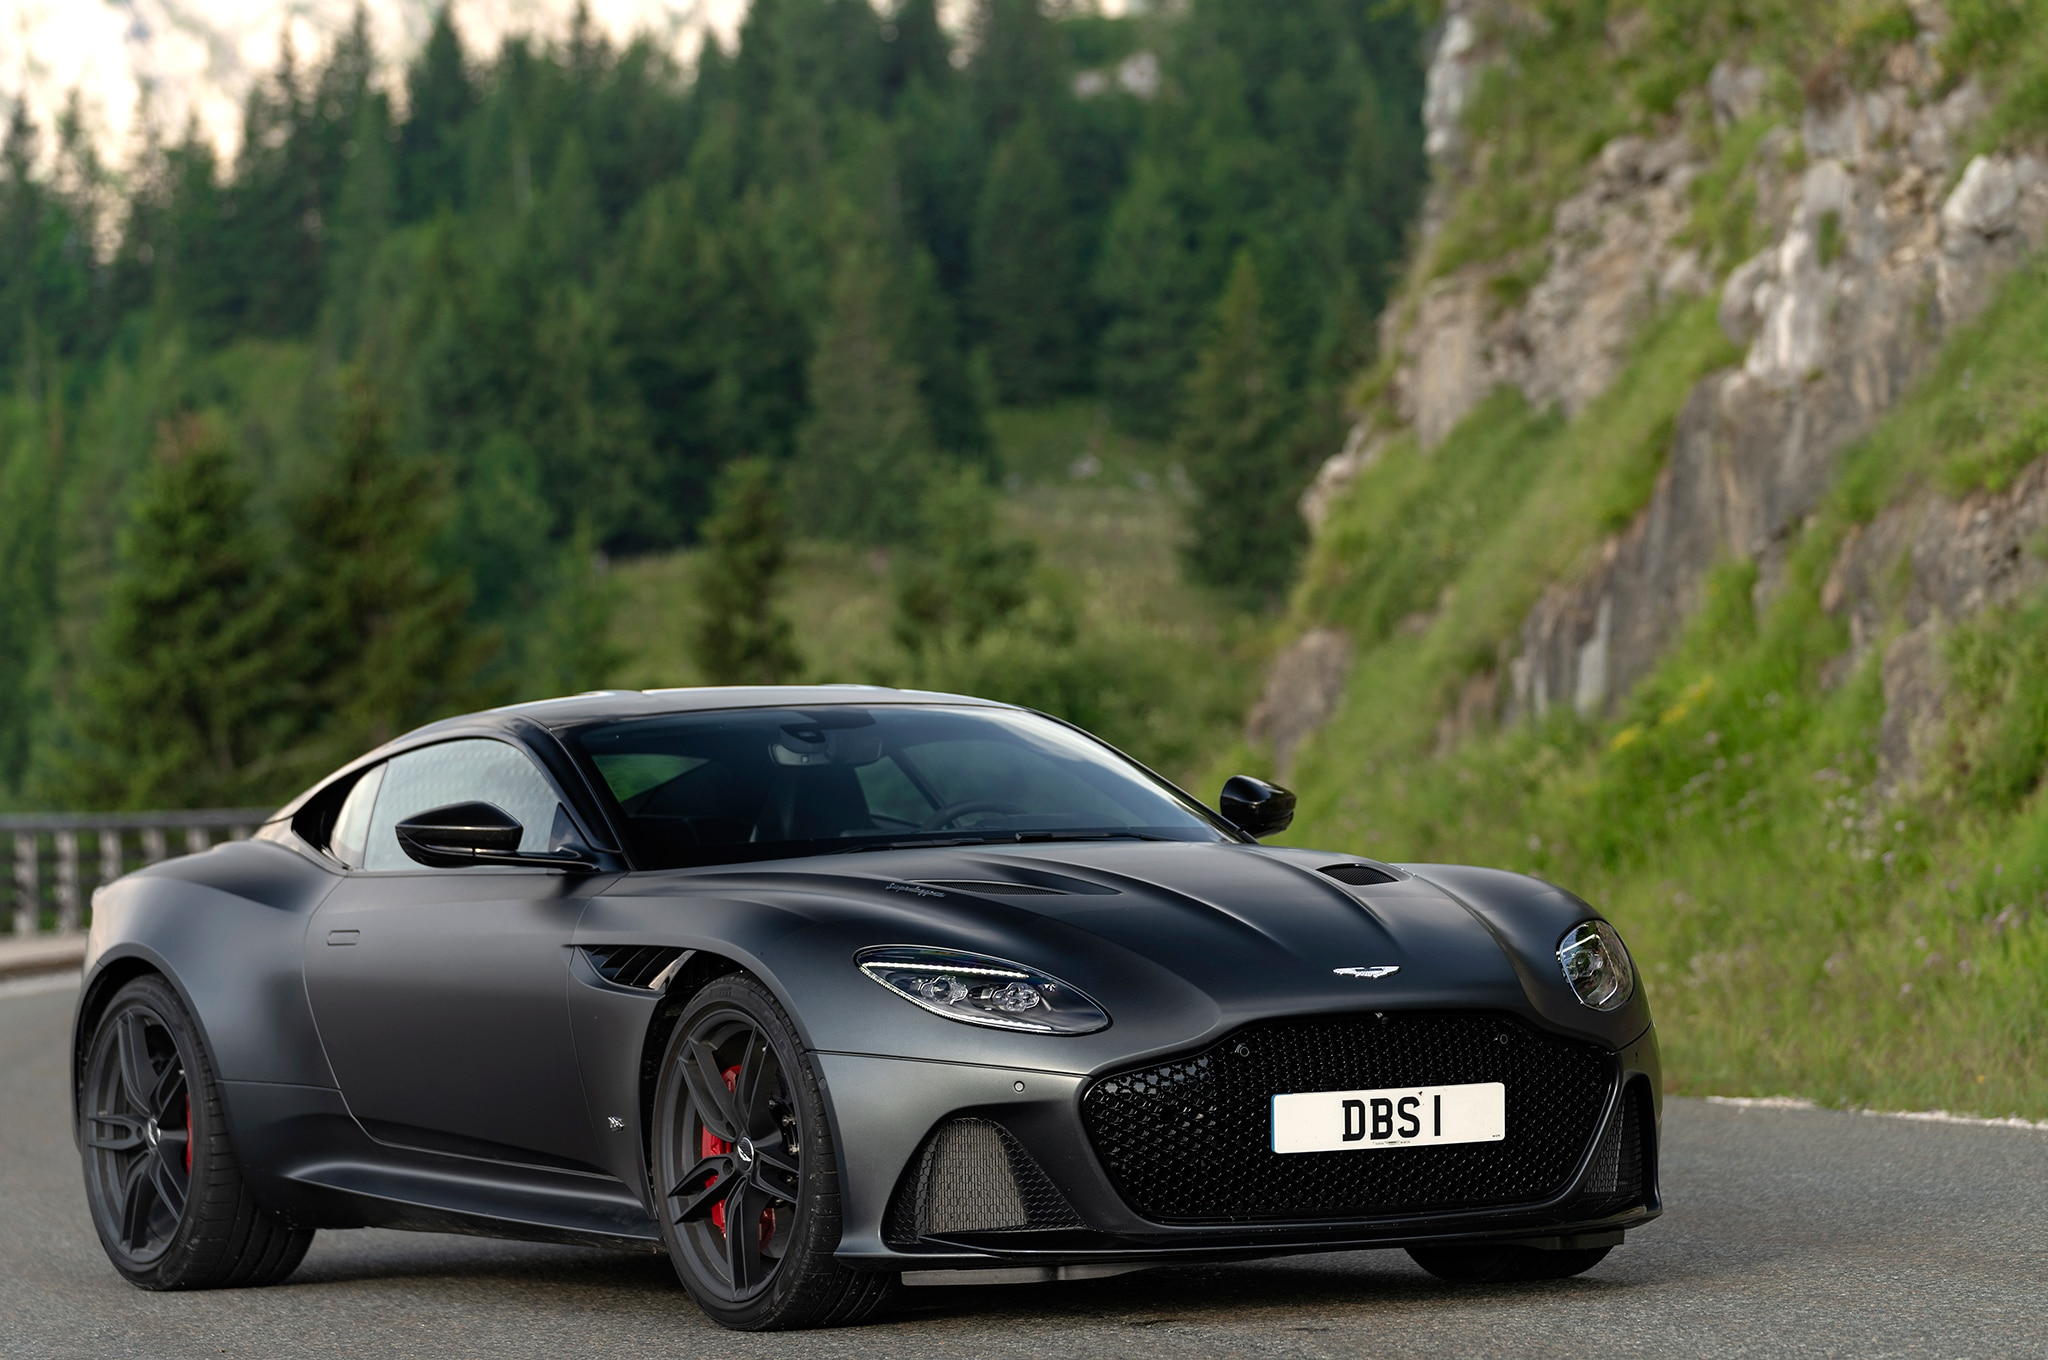 2019 Aston Martin Dbs Superleggera First Drive Review Automobile